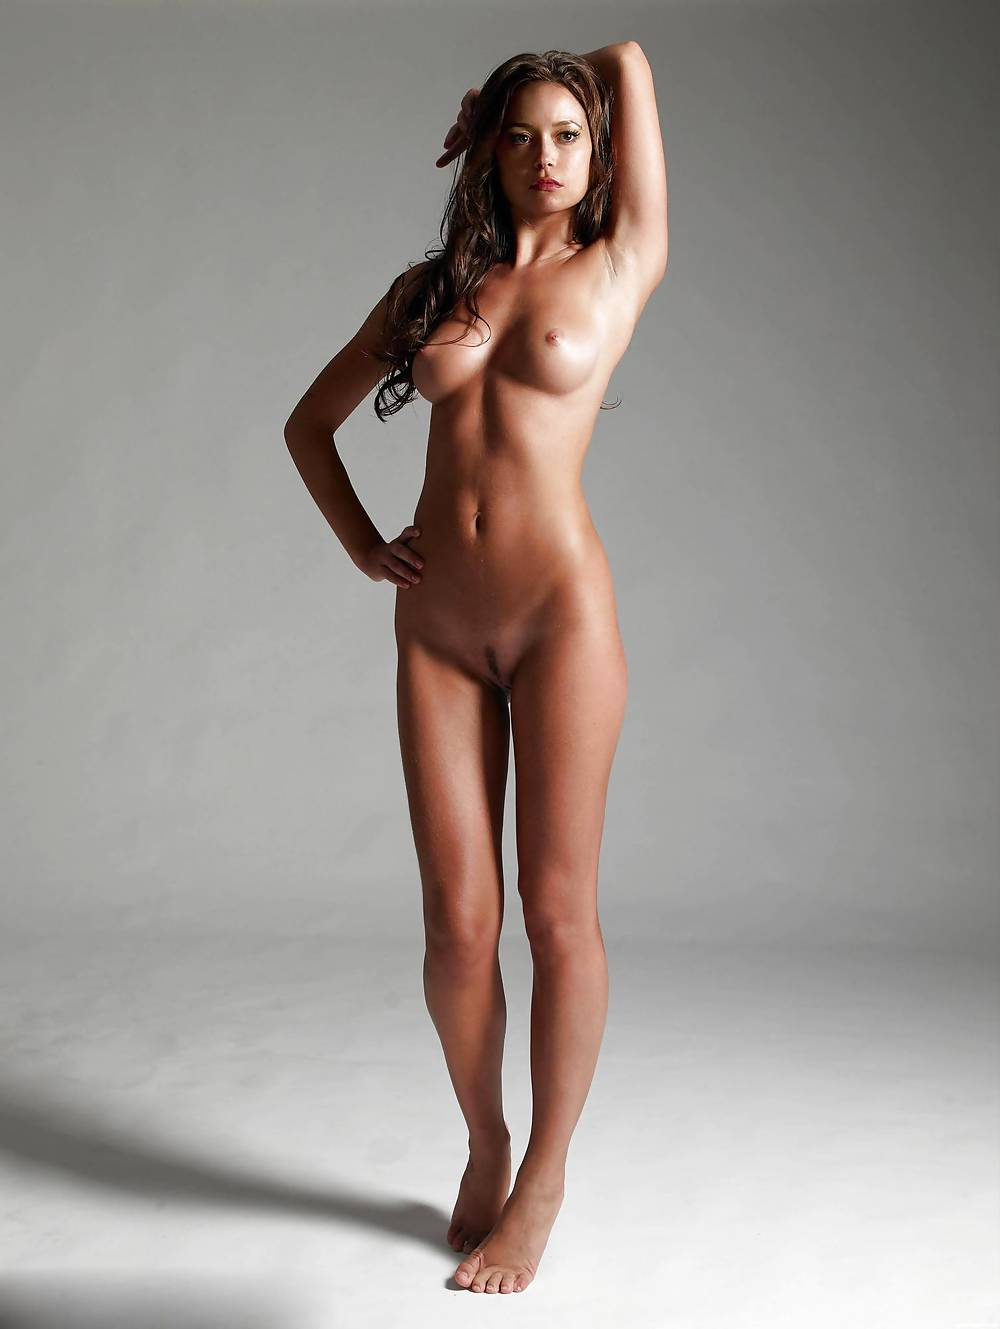 summer glau naked